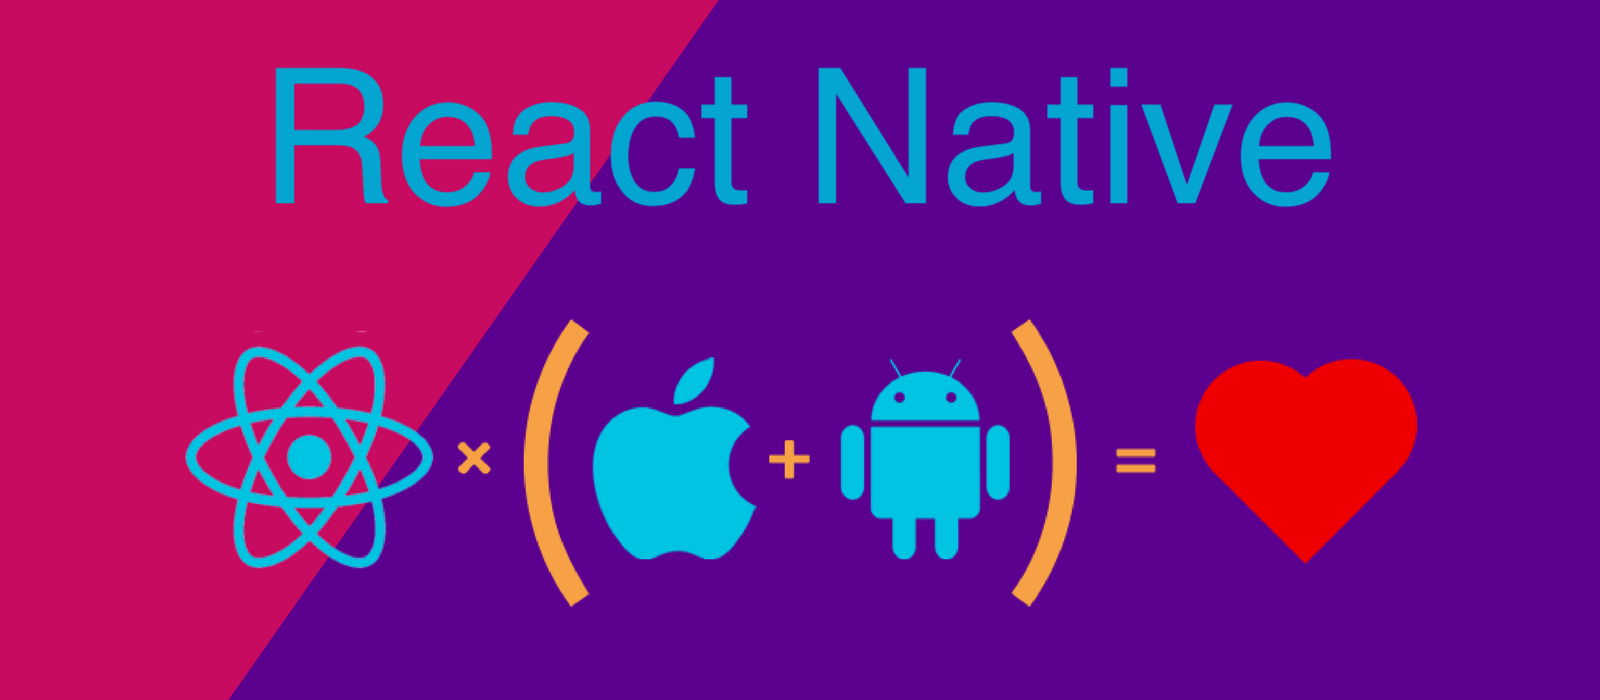 React Native - Build native Android/iOS apps using React